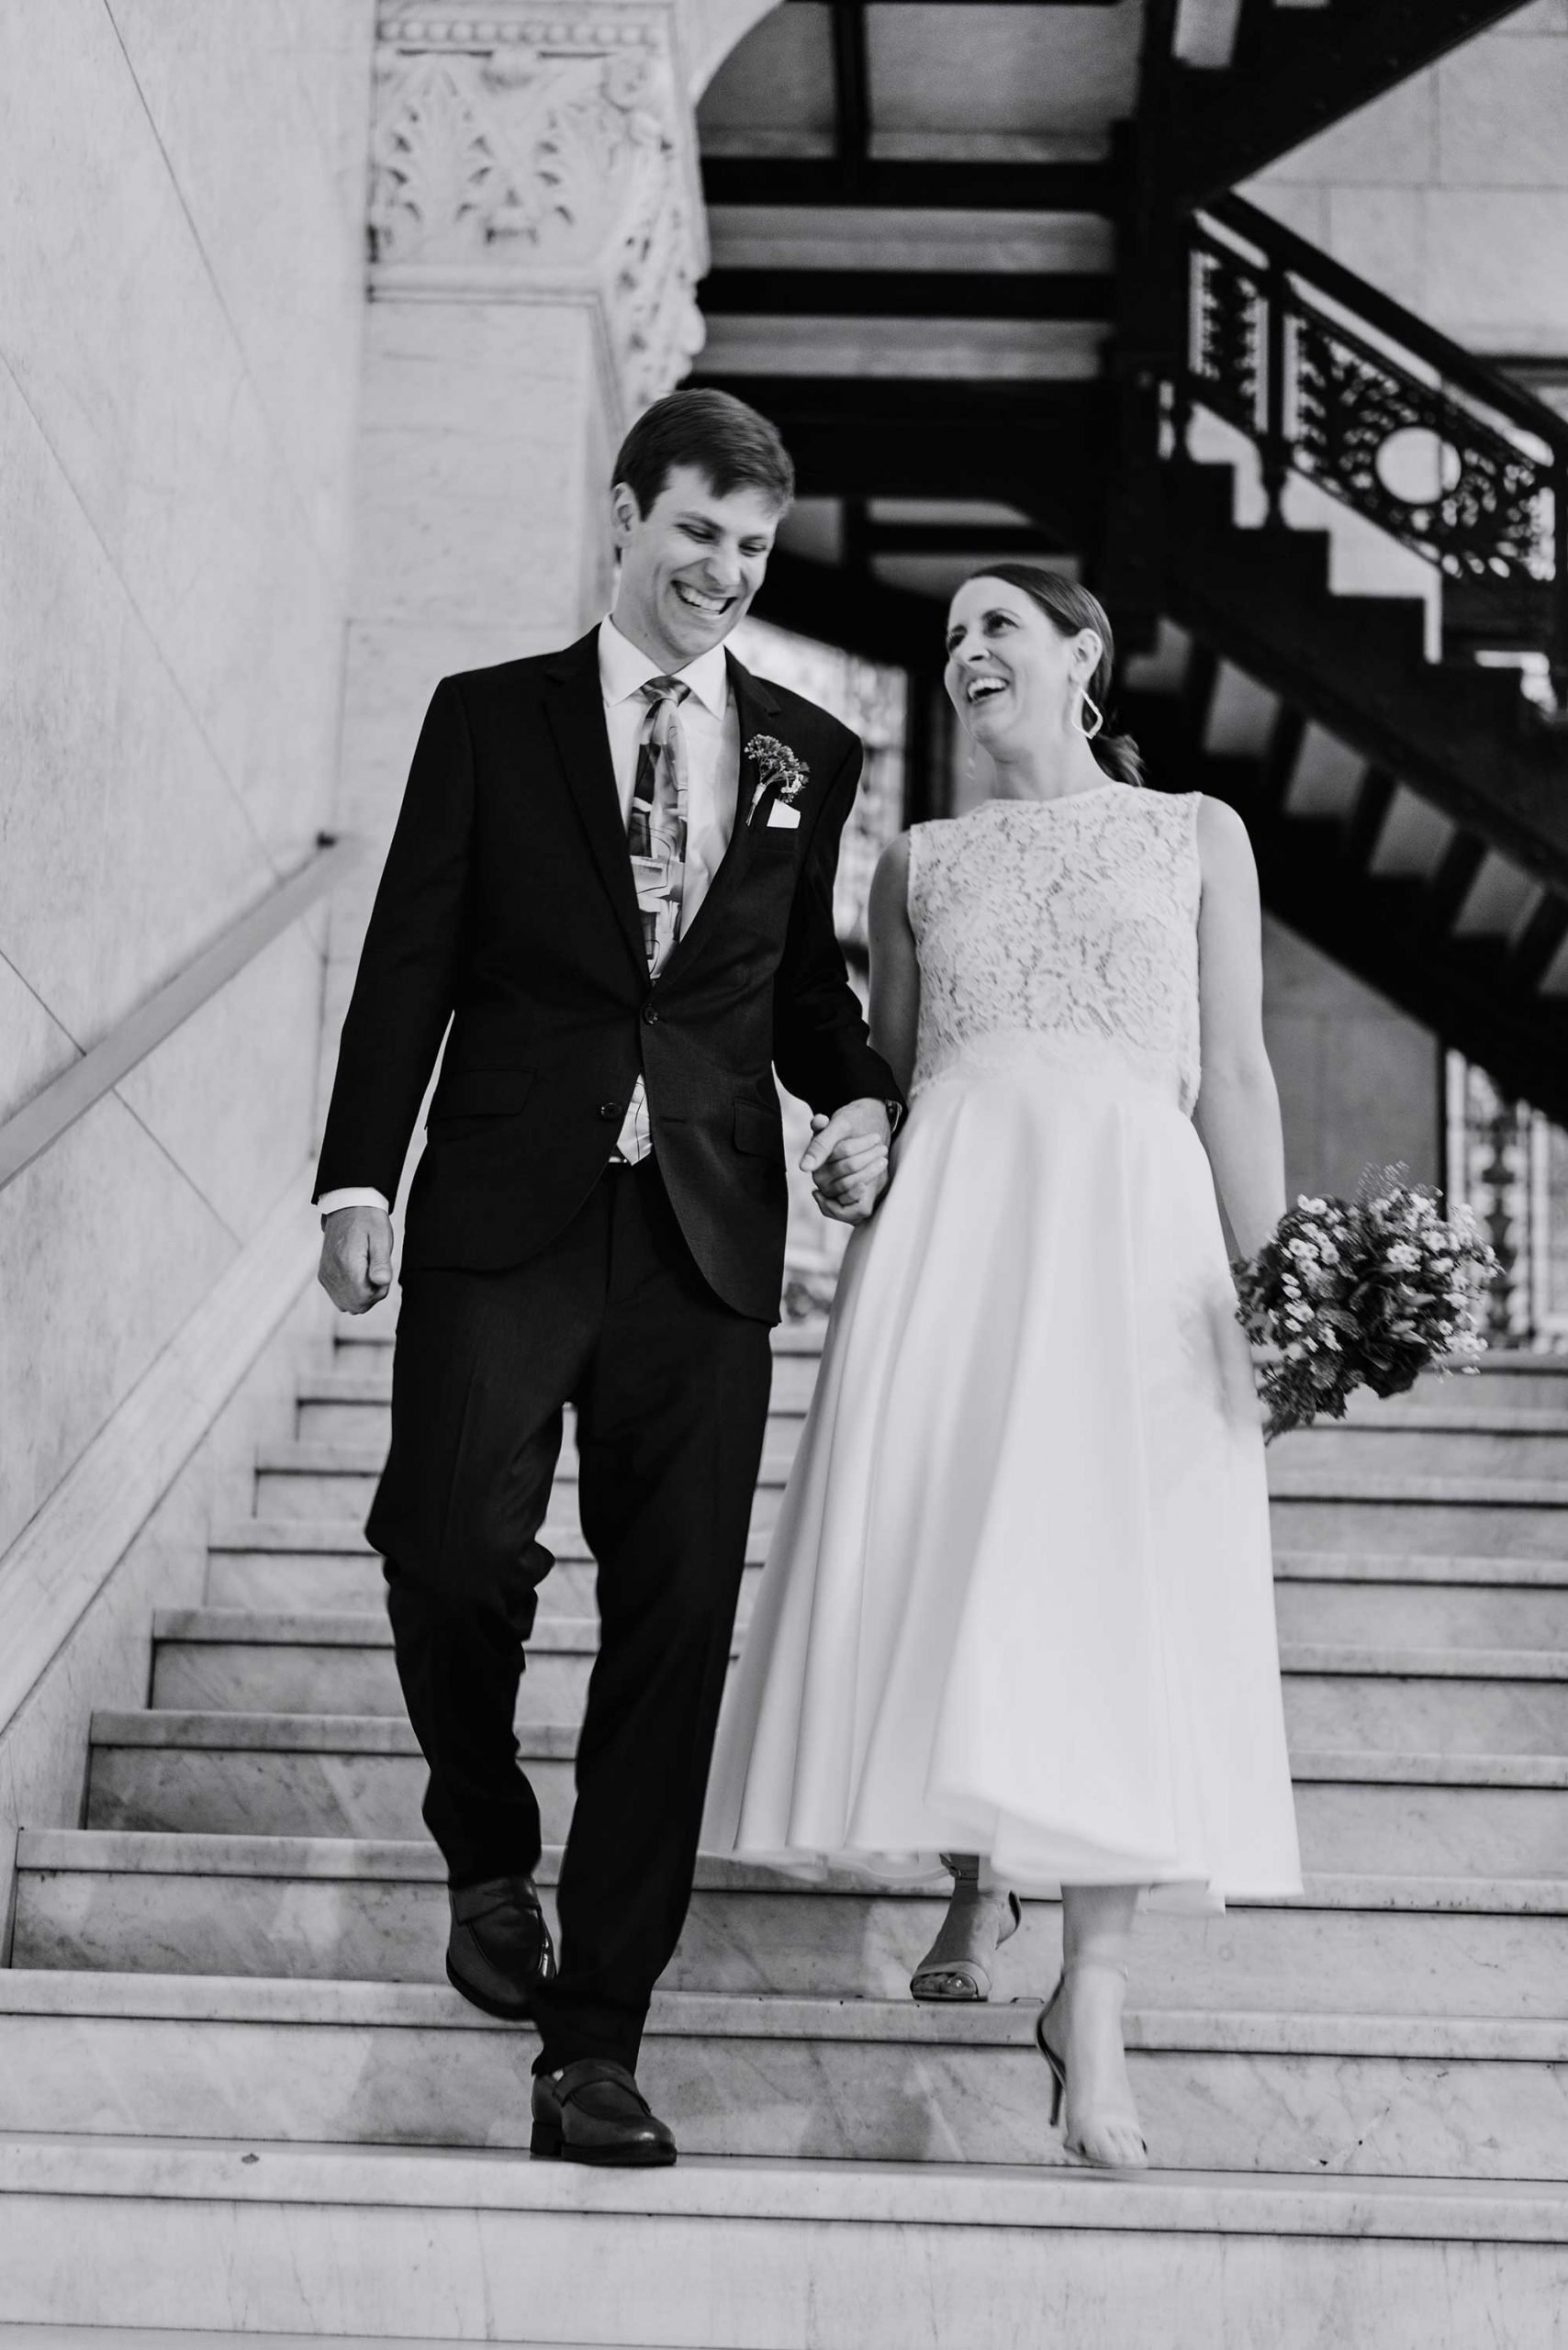 walking down the steps AT Minneapolis city hall wedding